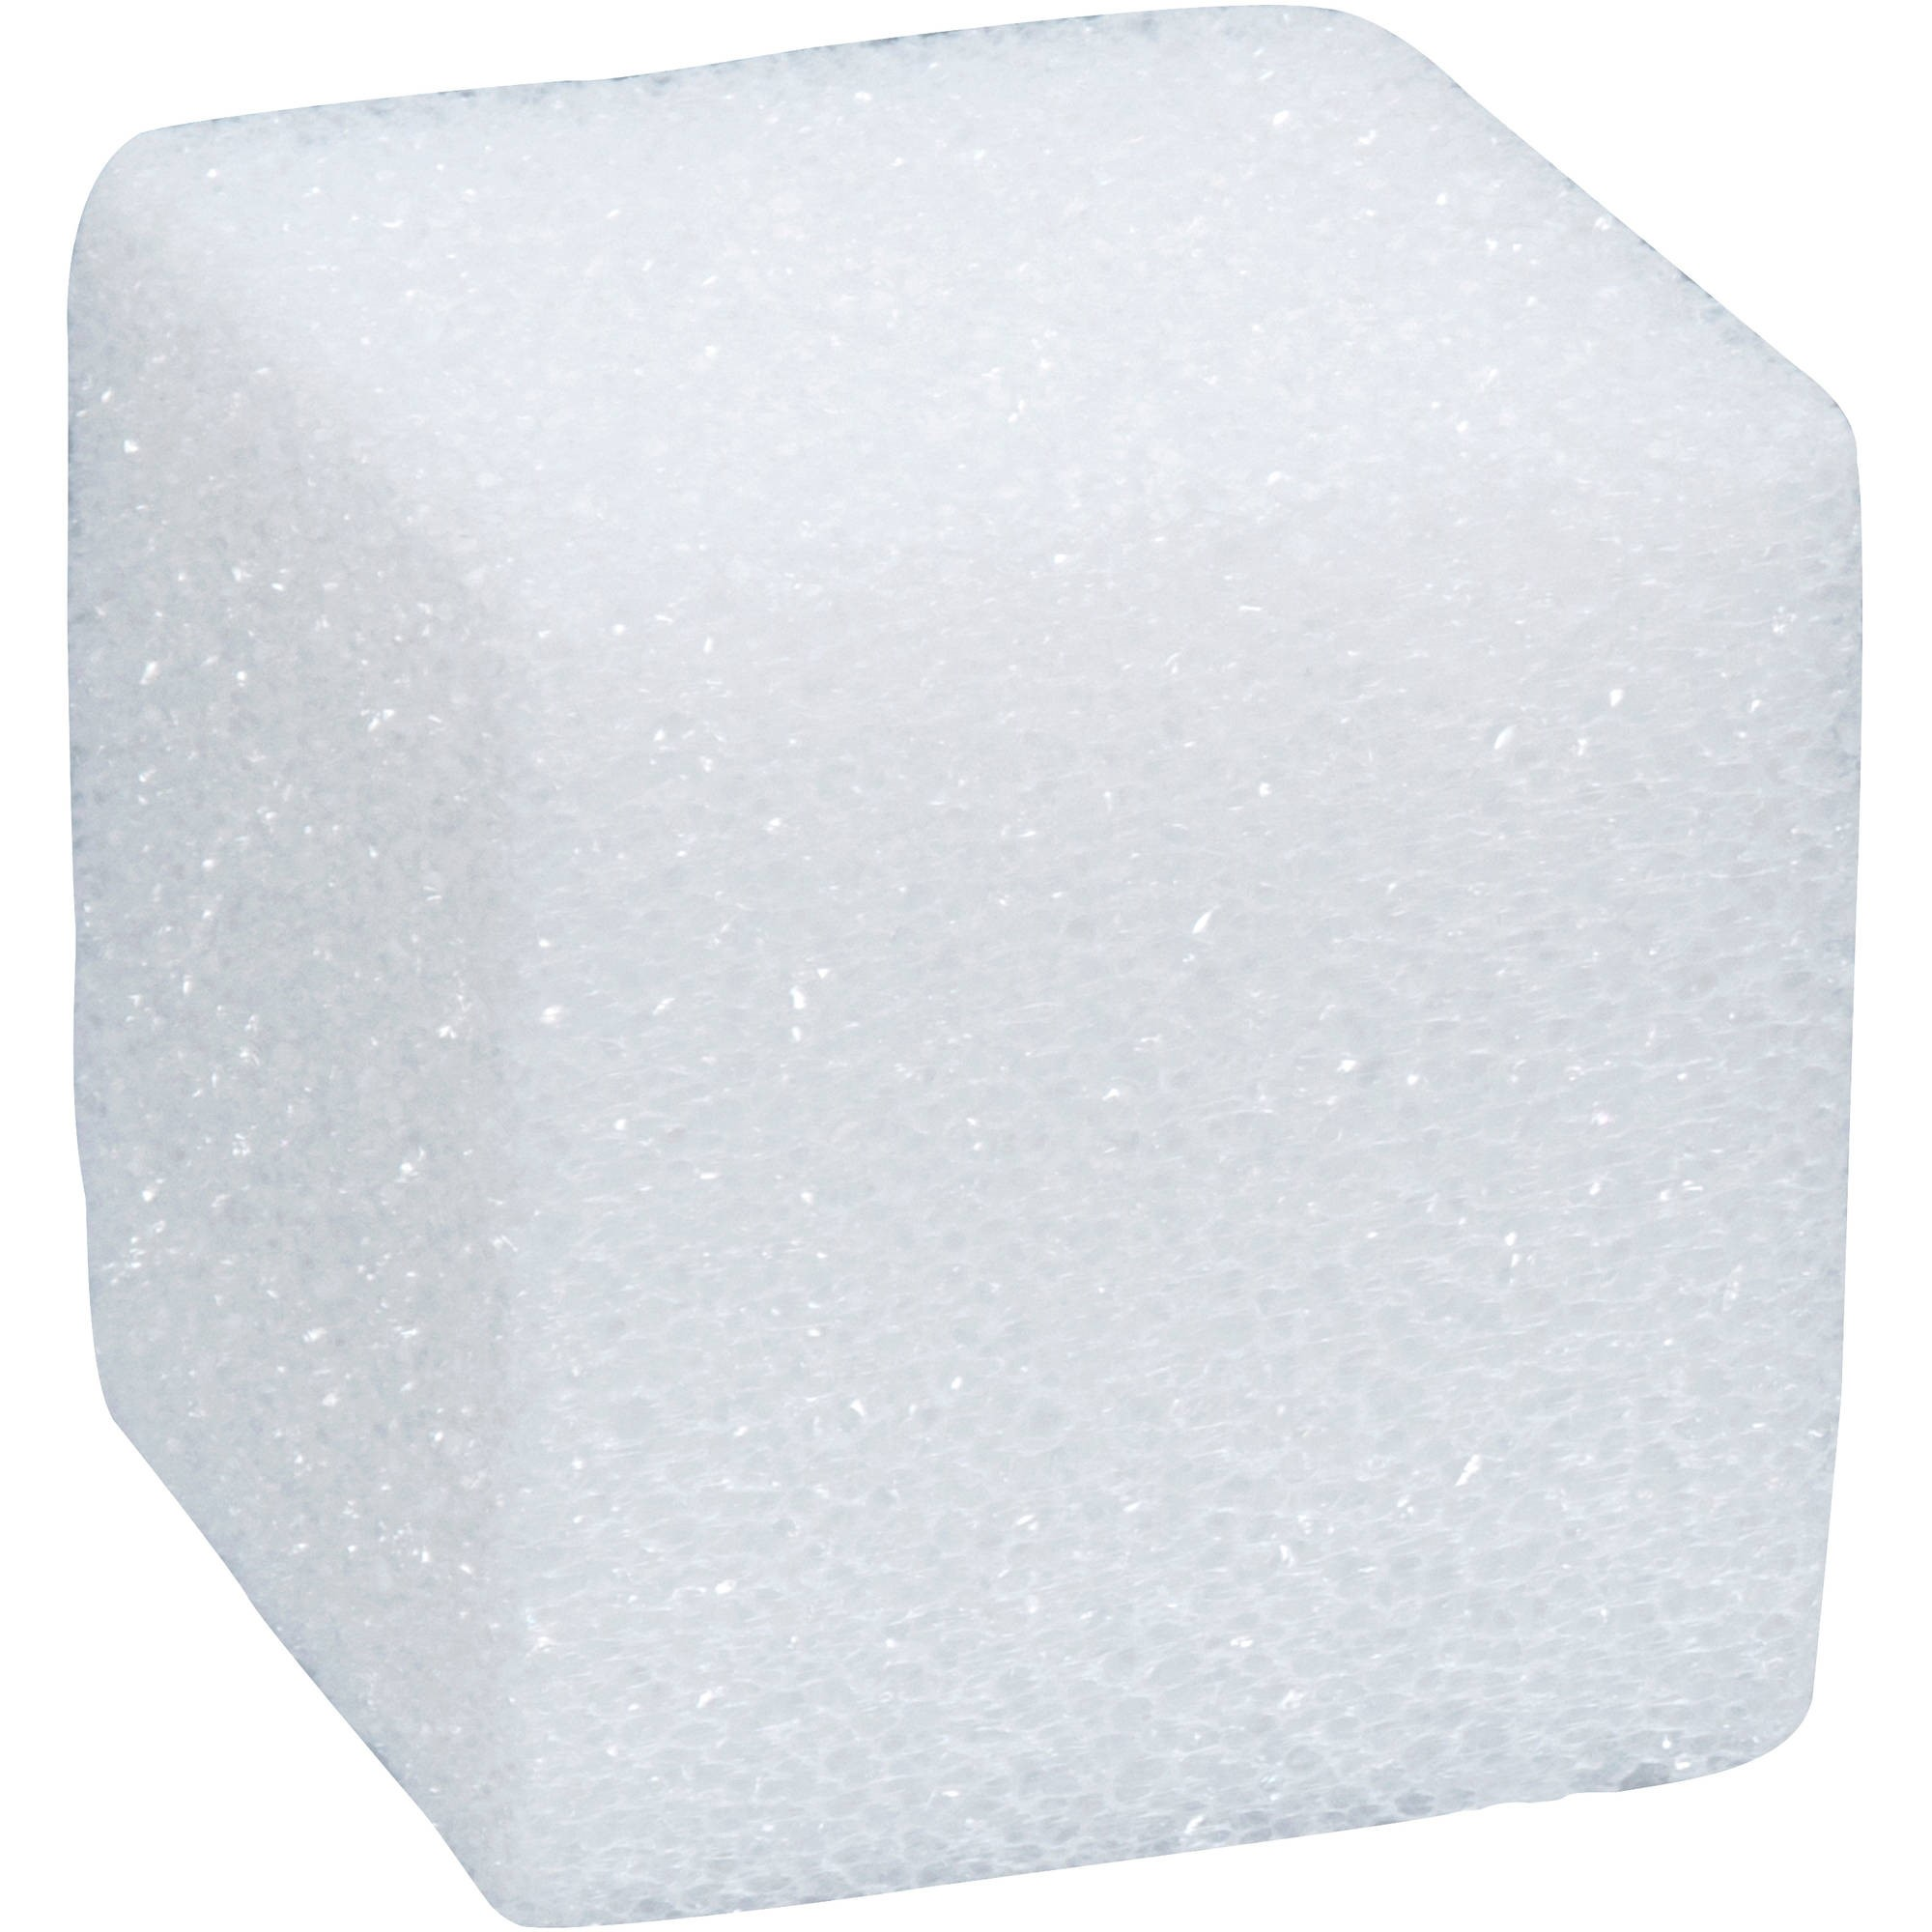 "Make It Fun Floracraft Styrofoam Block, 3"" x 3"" x 3"""